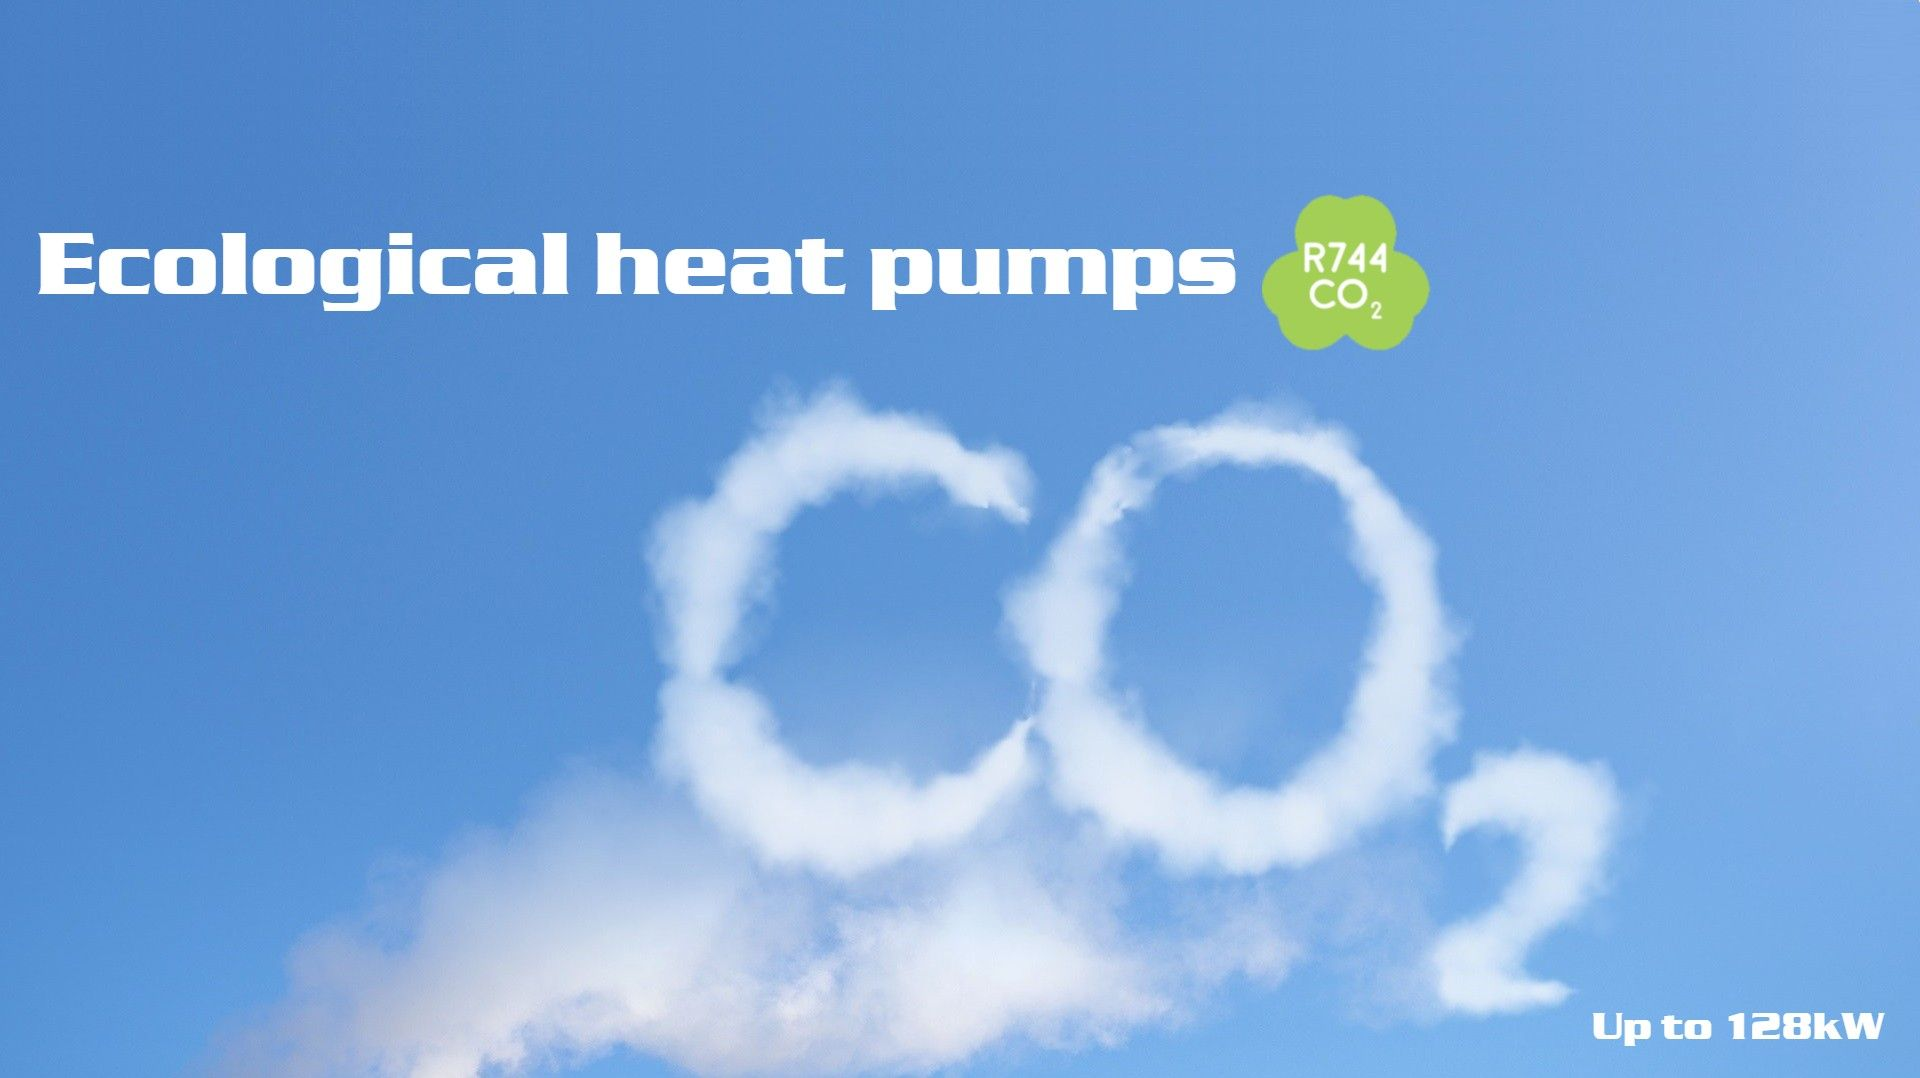 Heat pumps with CO2 compressor R744